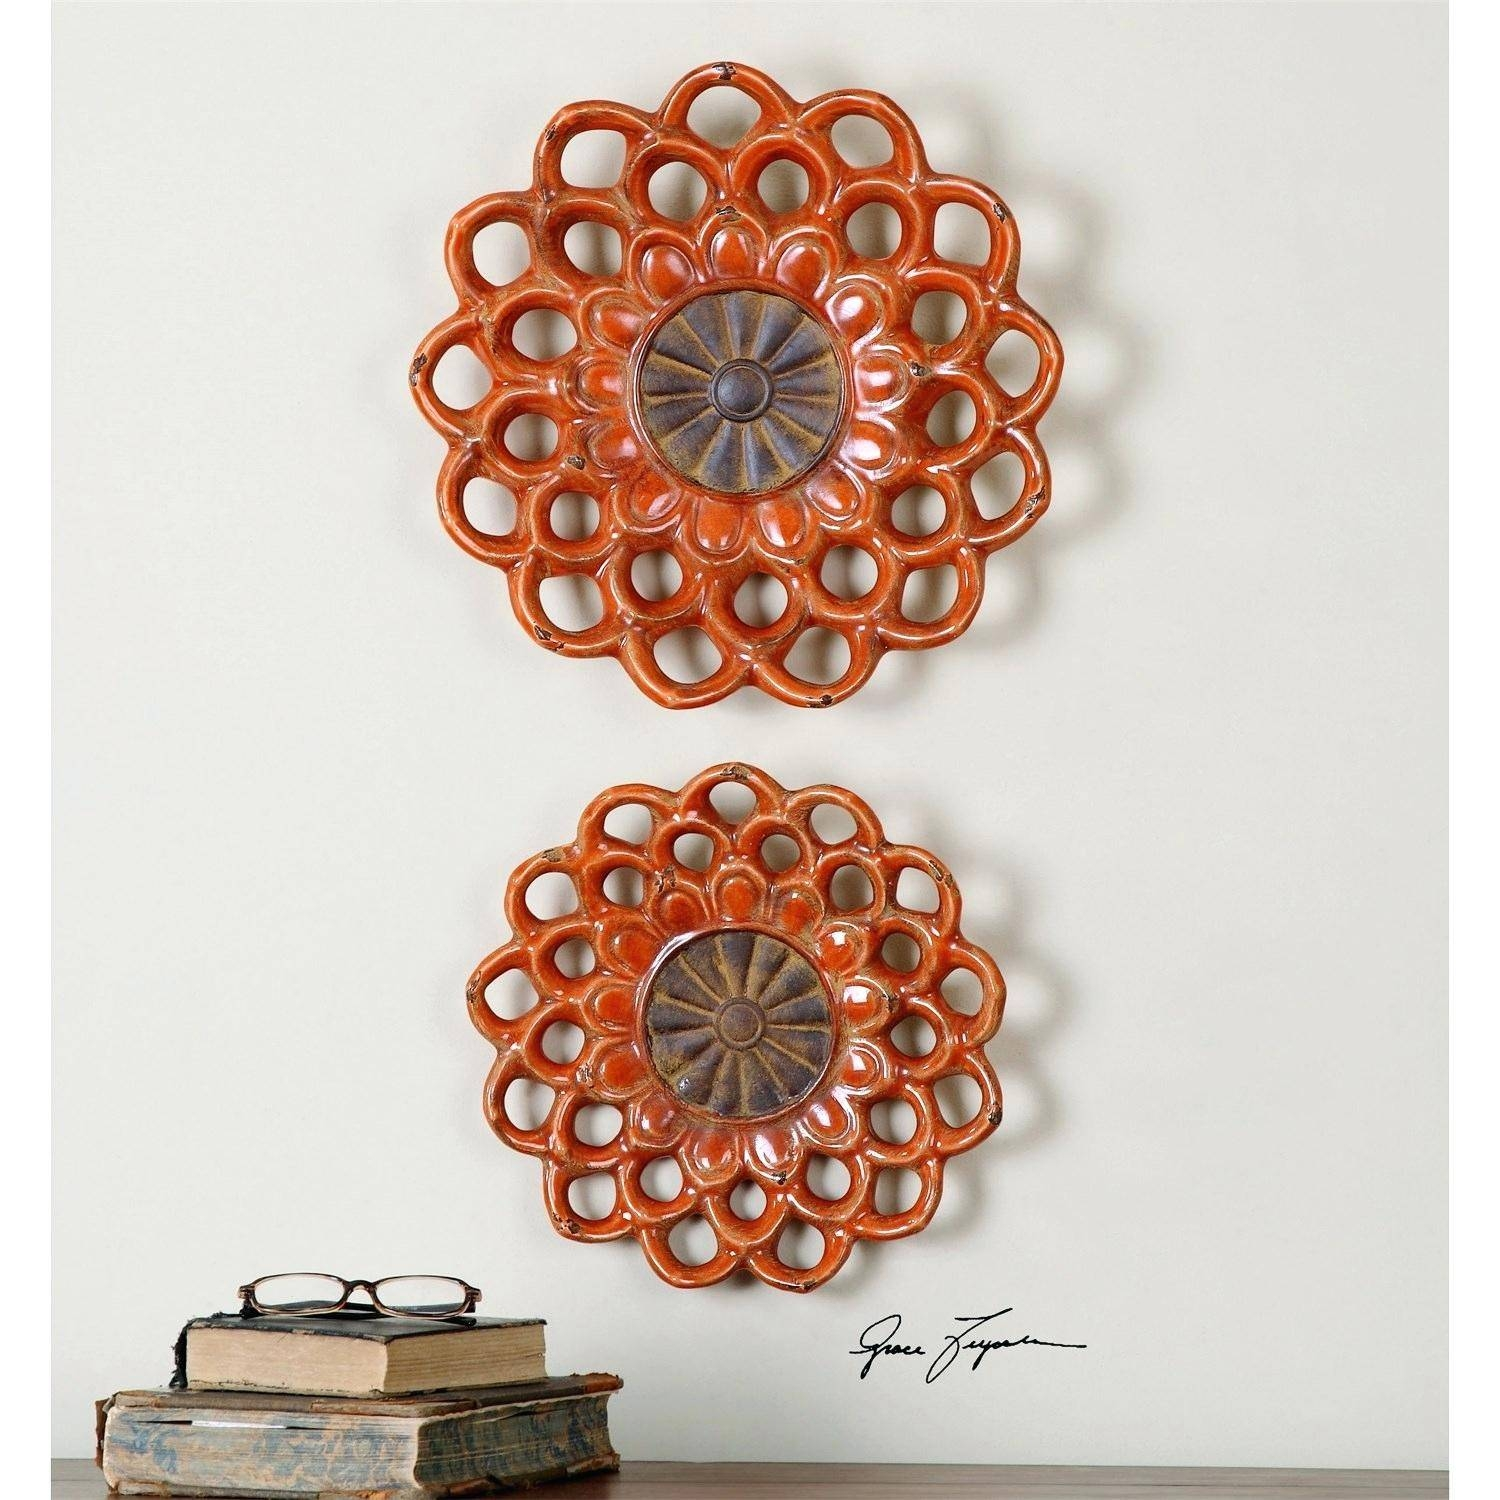 Wall Decor : 91 Wall Decor Amazing Ceramic Wall Hanging Art In Most Popular Large Ceramic Wall Art (View 8 of 25)